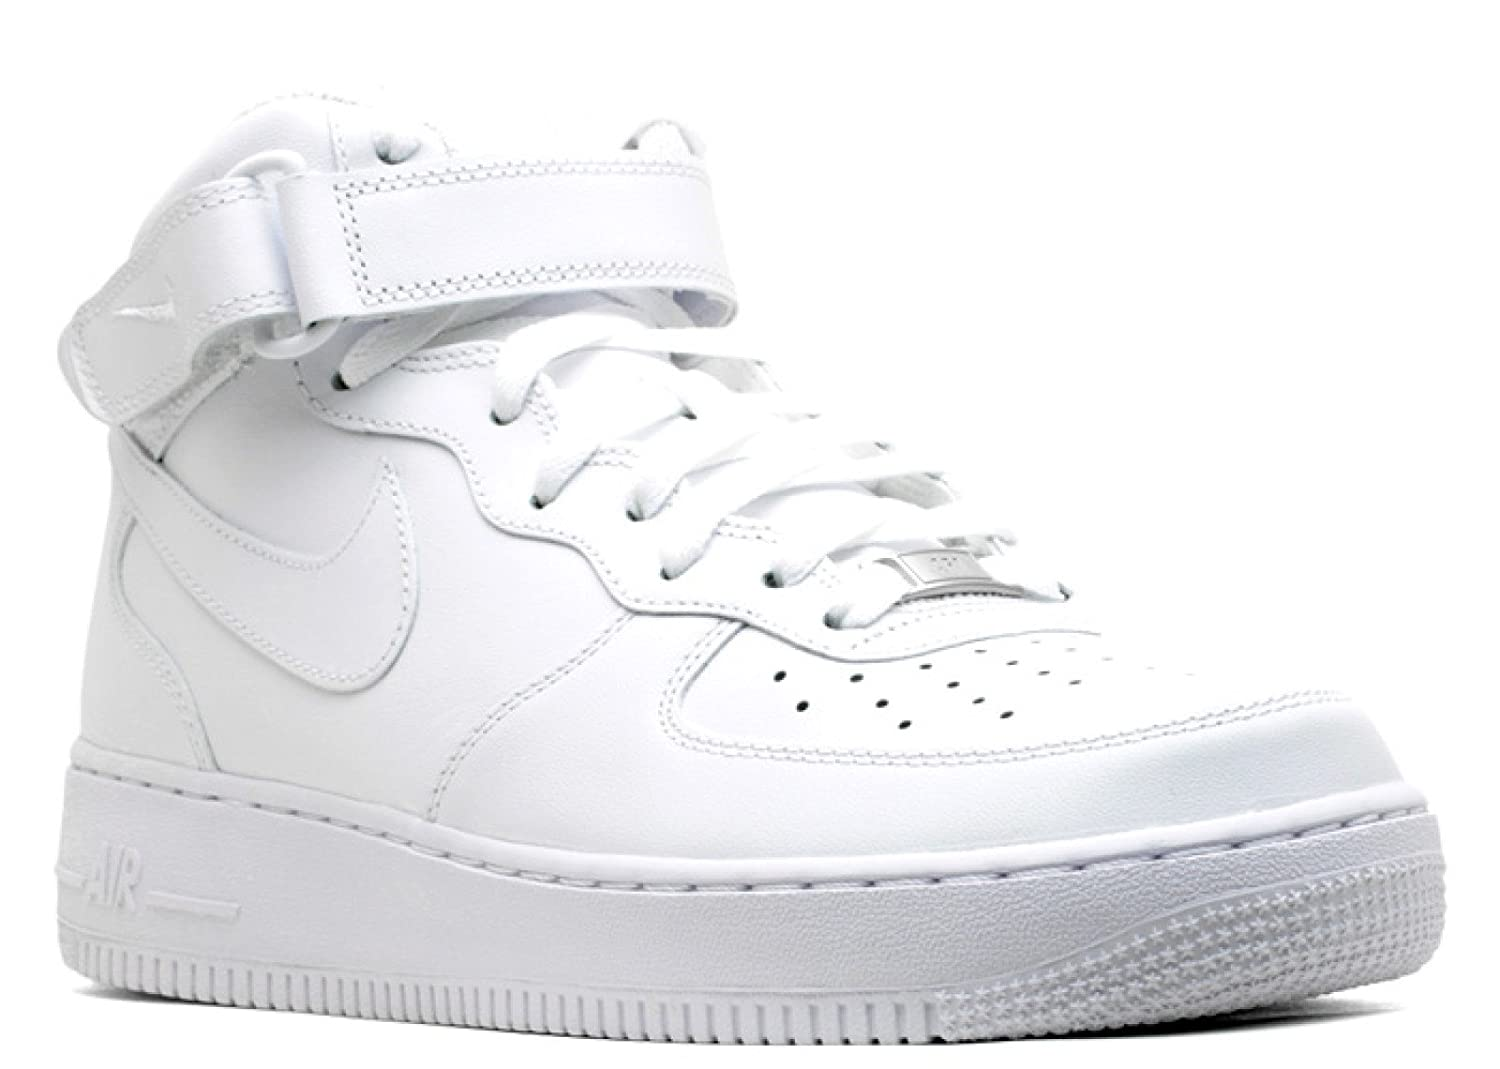 8d65eecc09cba4 Nike Herren Air Force 1 Mid 07 Basketballschuhe 12